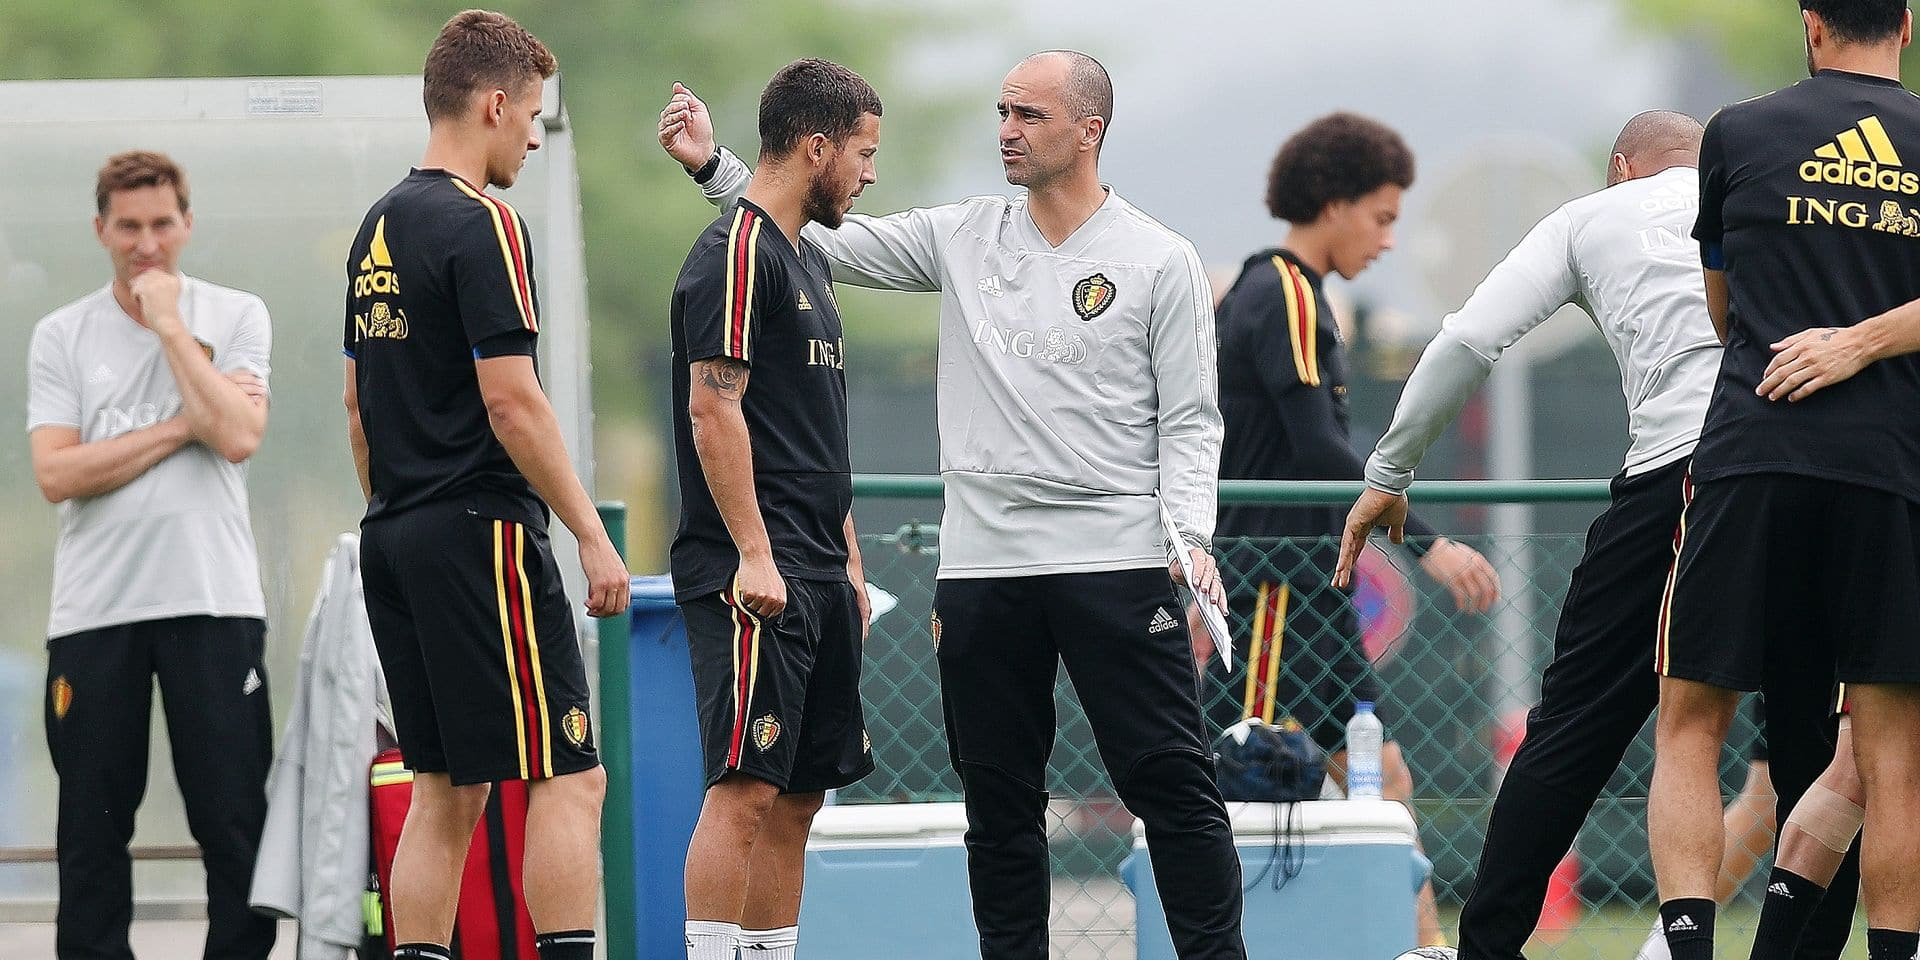 Belgium's Eden Hazard and Belgium's head coach Roberto Martinez pictured during a training session of the Belgian national soccer team Red Devils, Friday 08 June 2018, in Tubize. The Red Devils started their preparations for the upcoming FIFA World Cup 2018 in Russia. BELGA PHOTO BRUNO FAHY